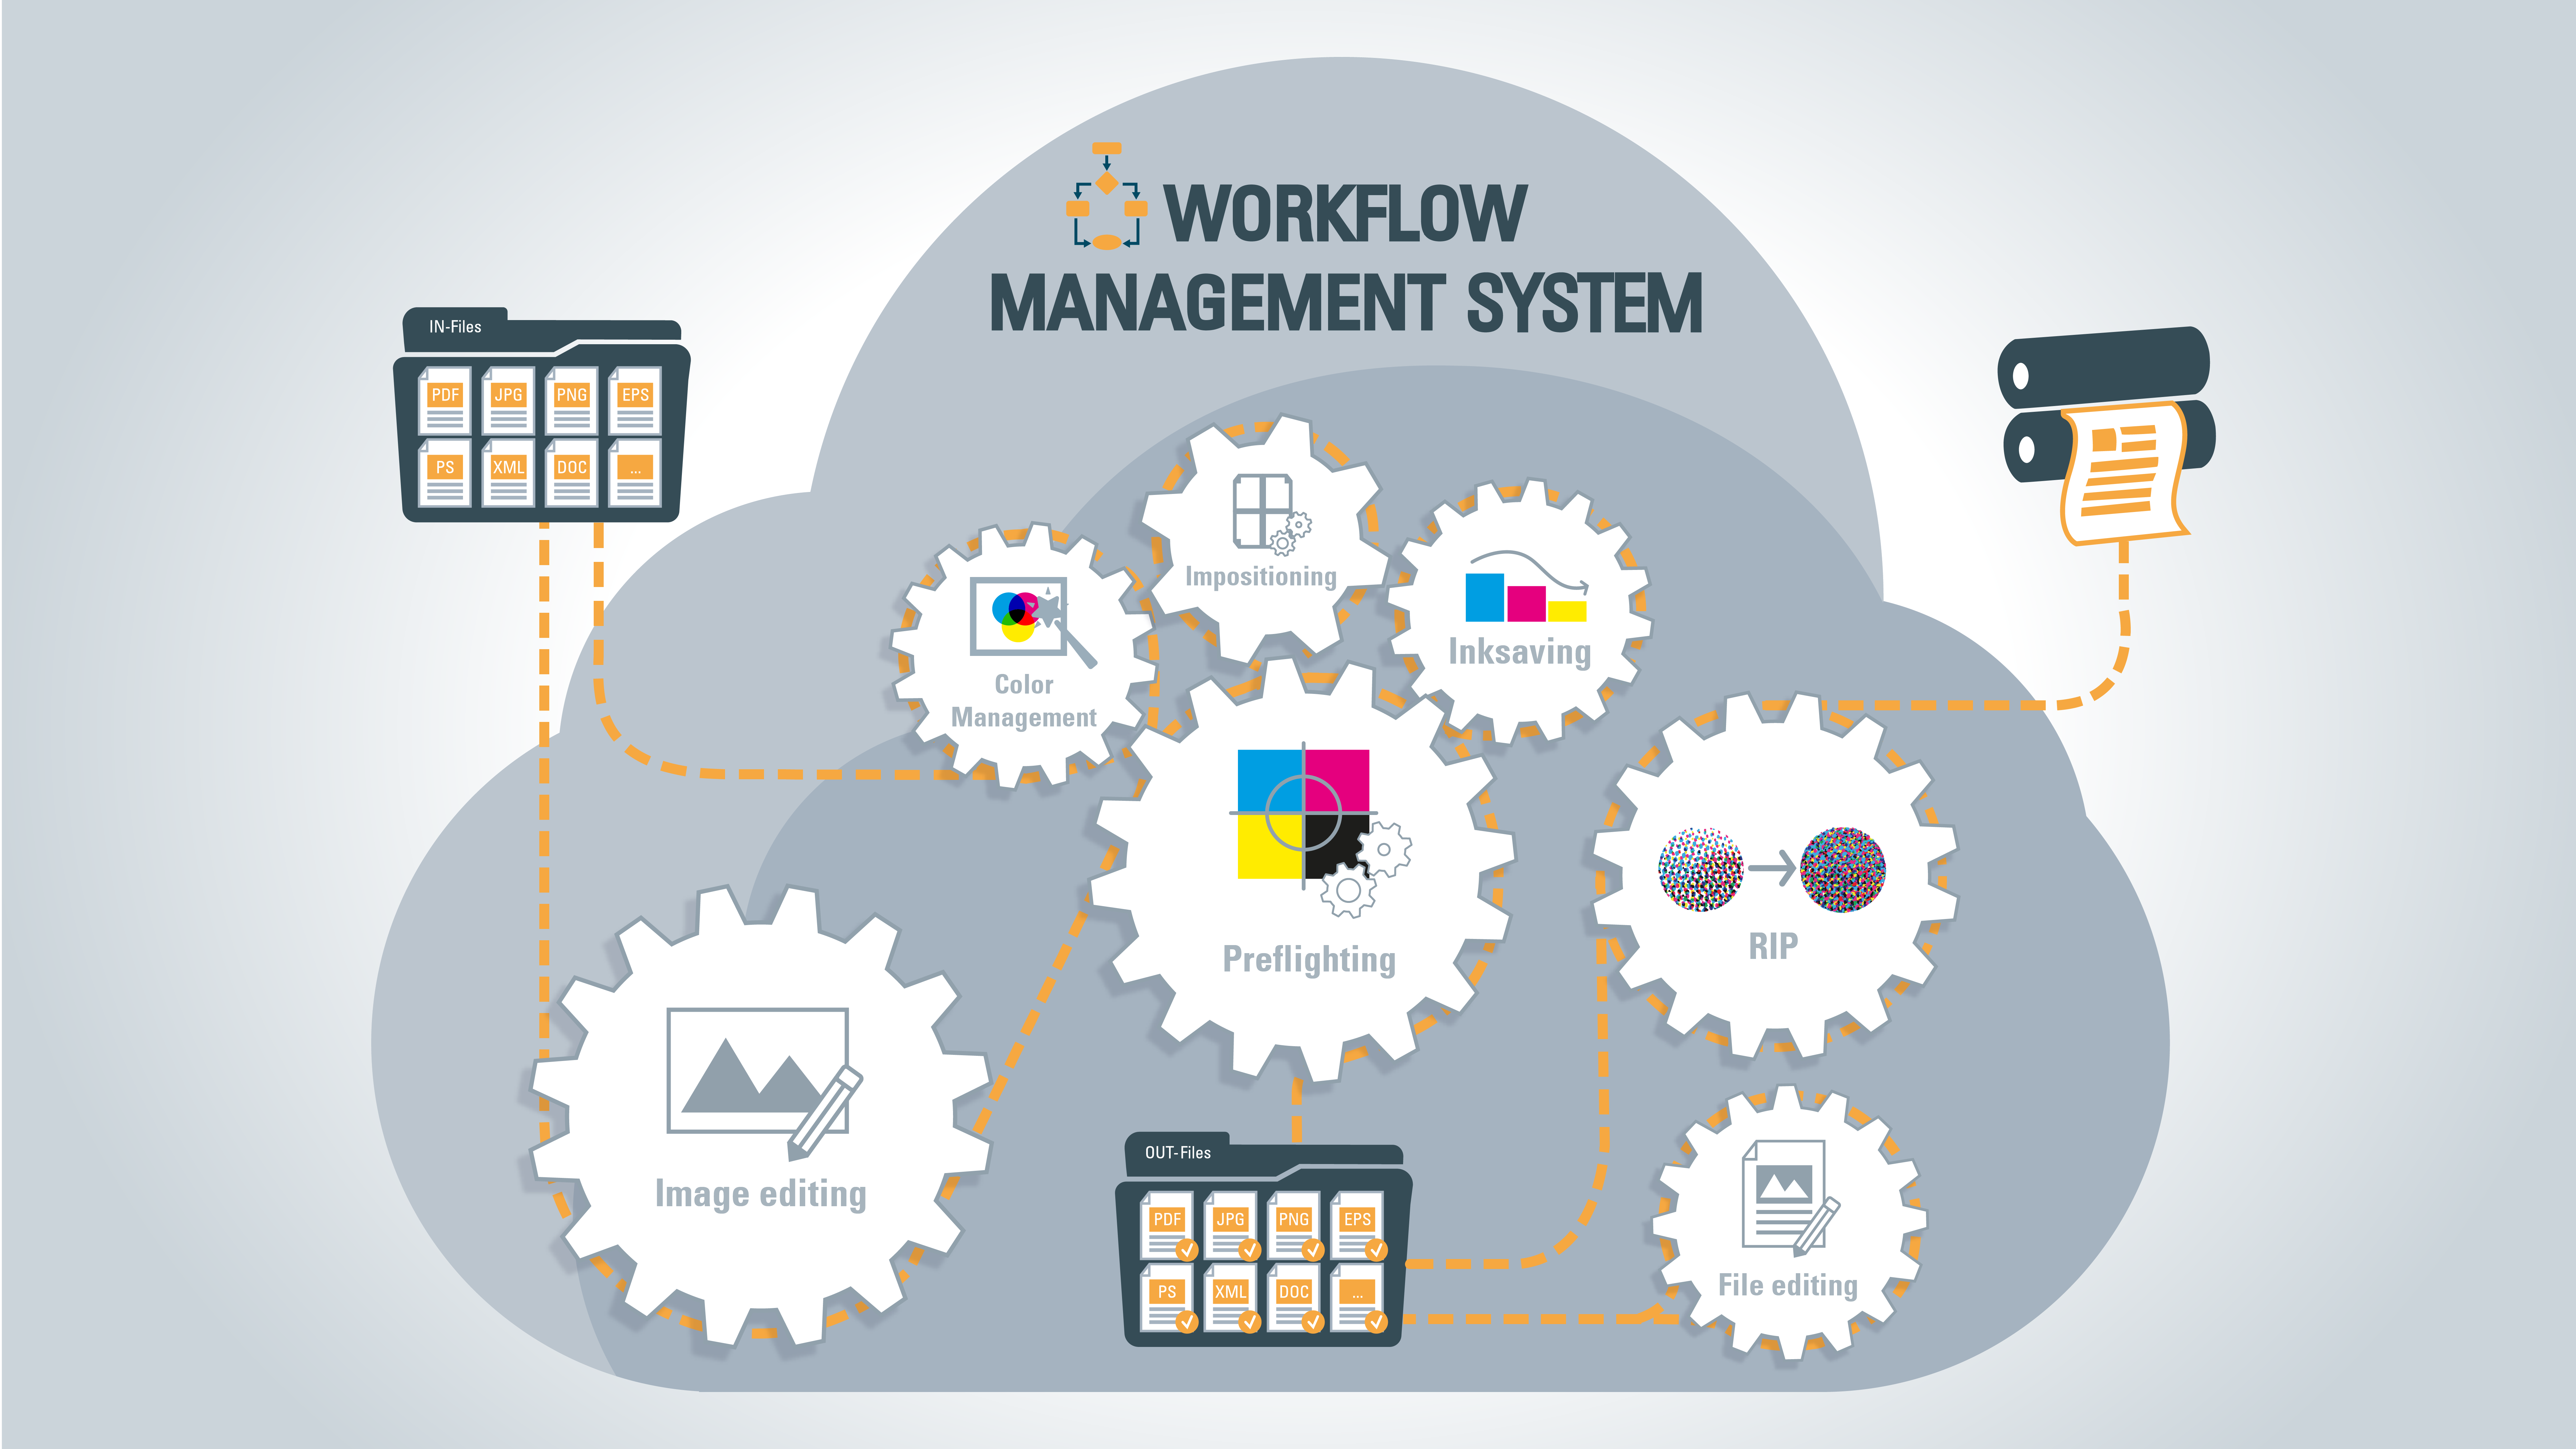 More productivity and effectiveness with Workflow Management Systems